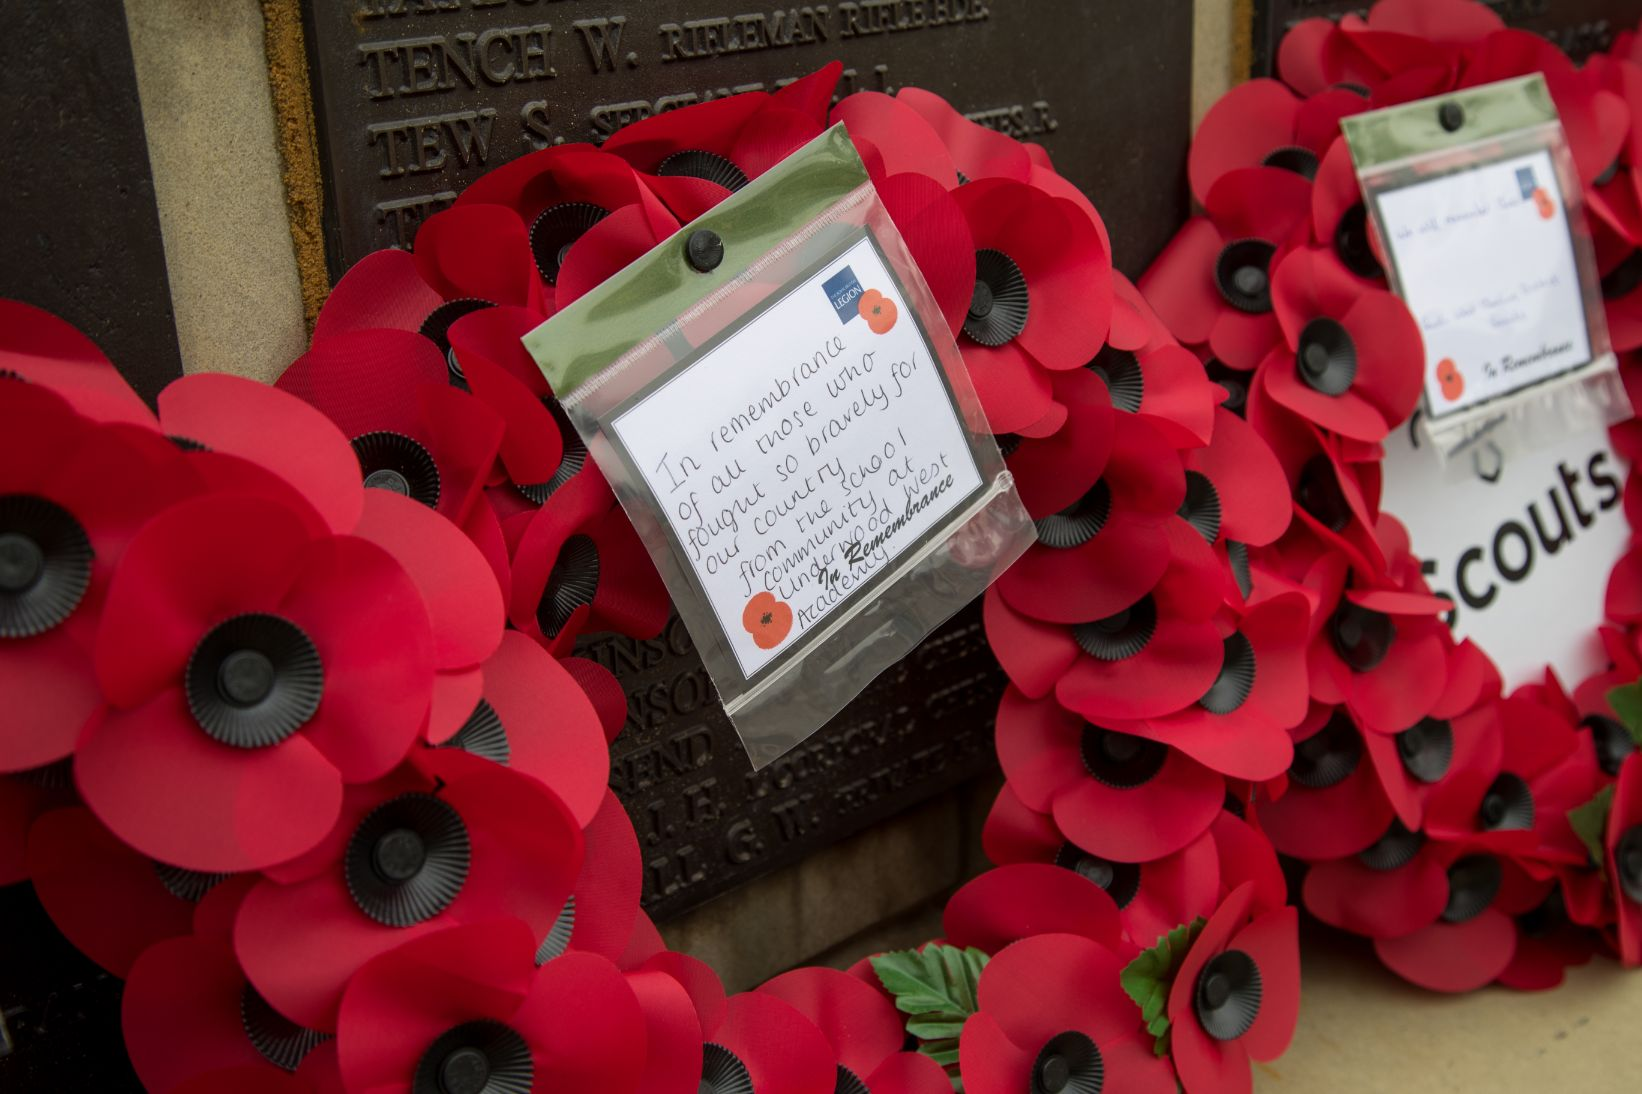 Crewe Remembrance Day 2020 67